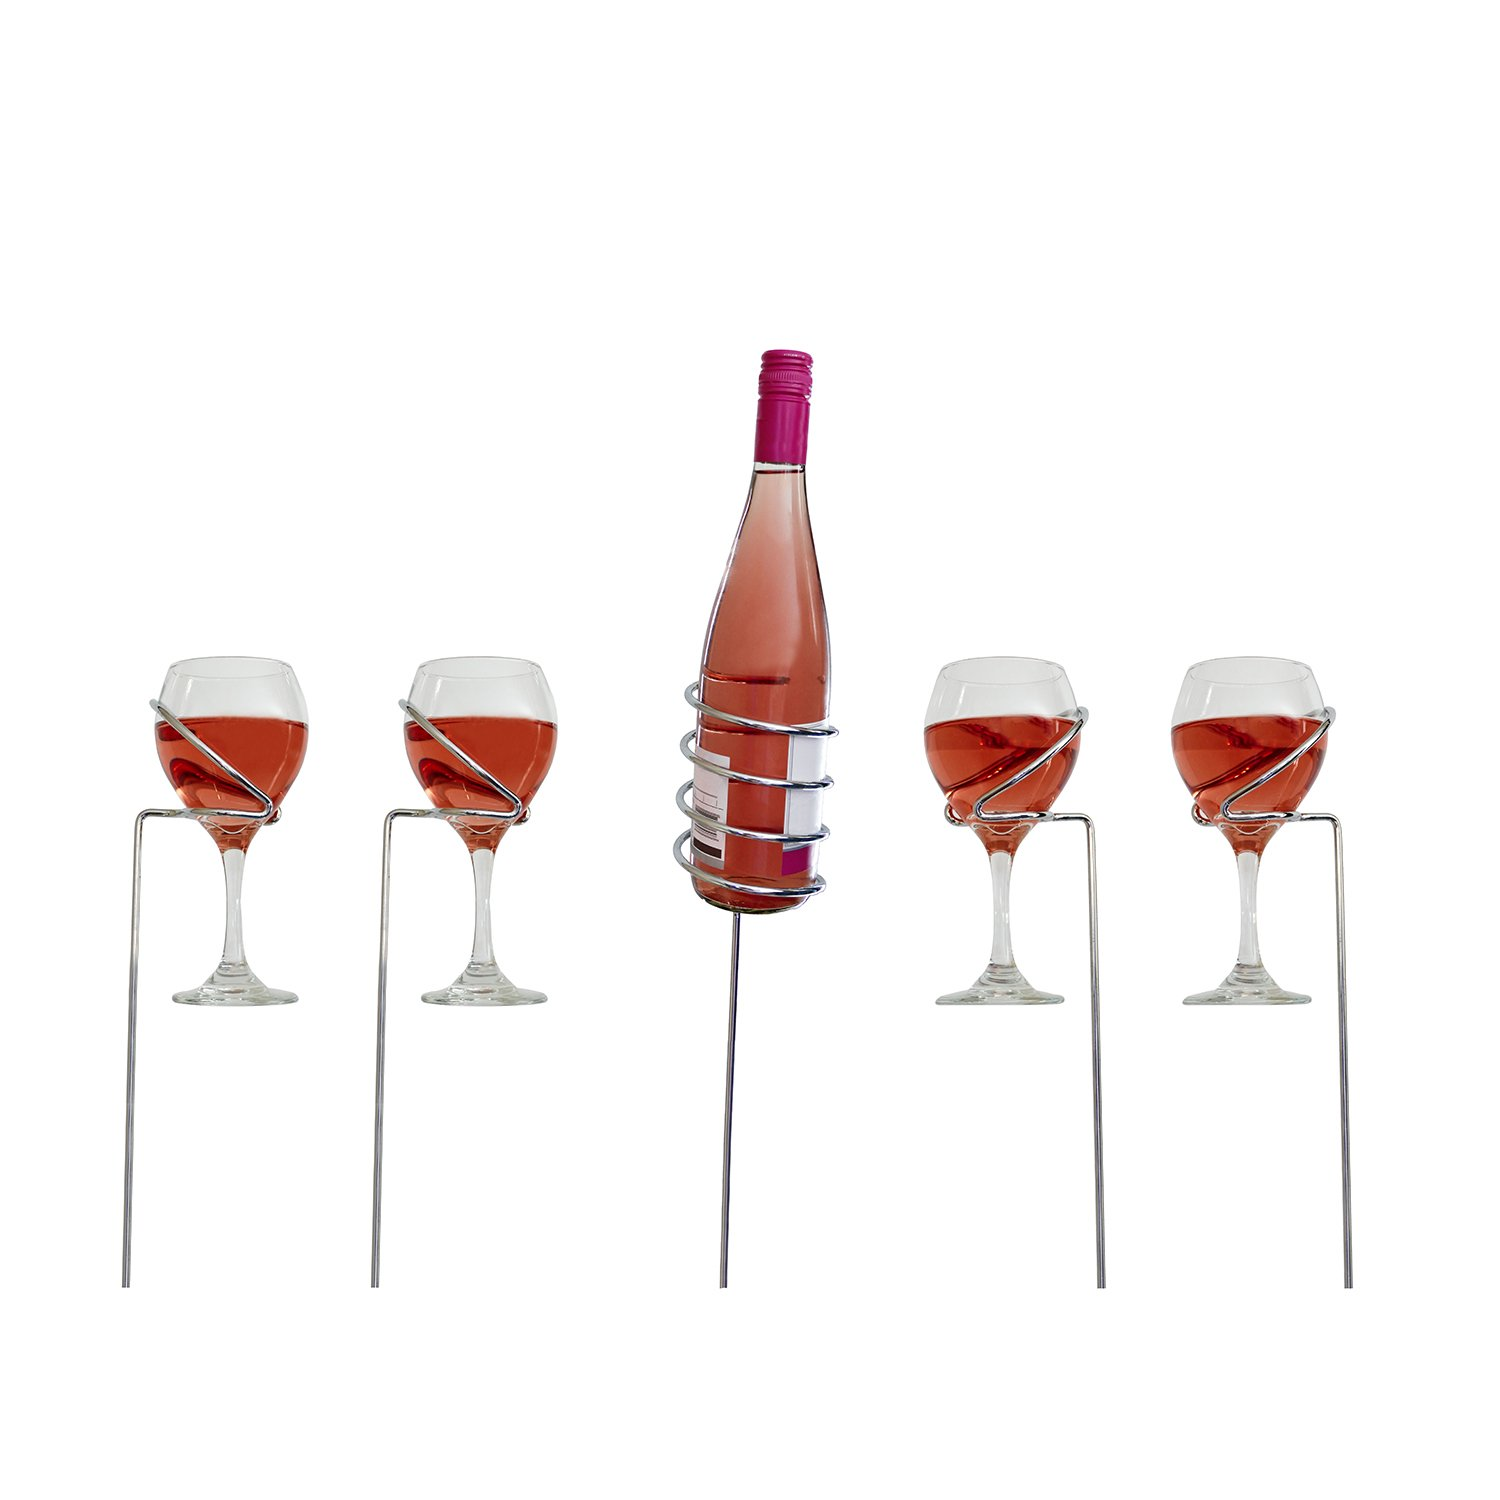 Wine Stake Holders, 5-Piece Set – 1 Bottle Holder, 4 Glass Holders – for Convenient Outside Use